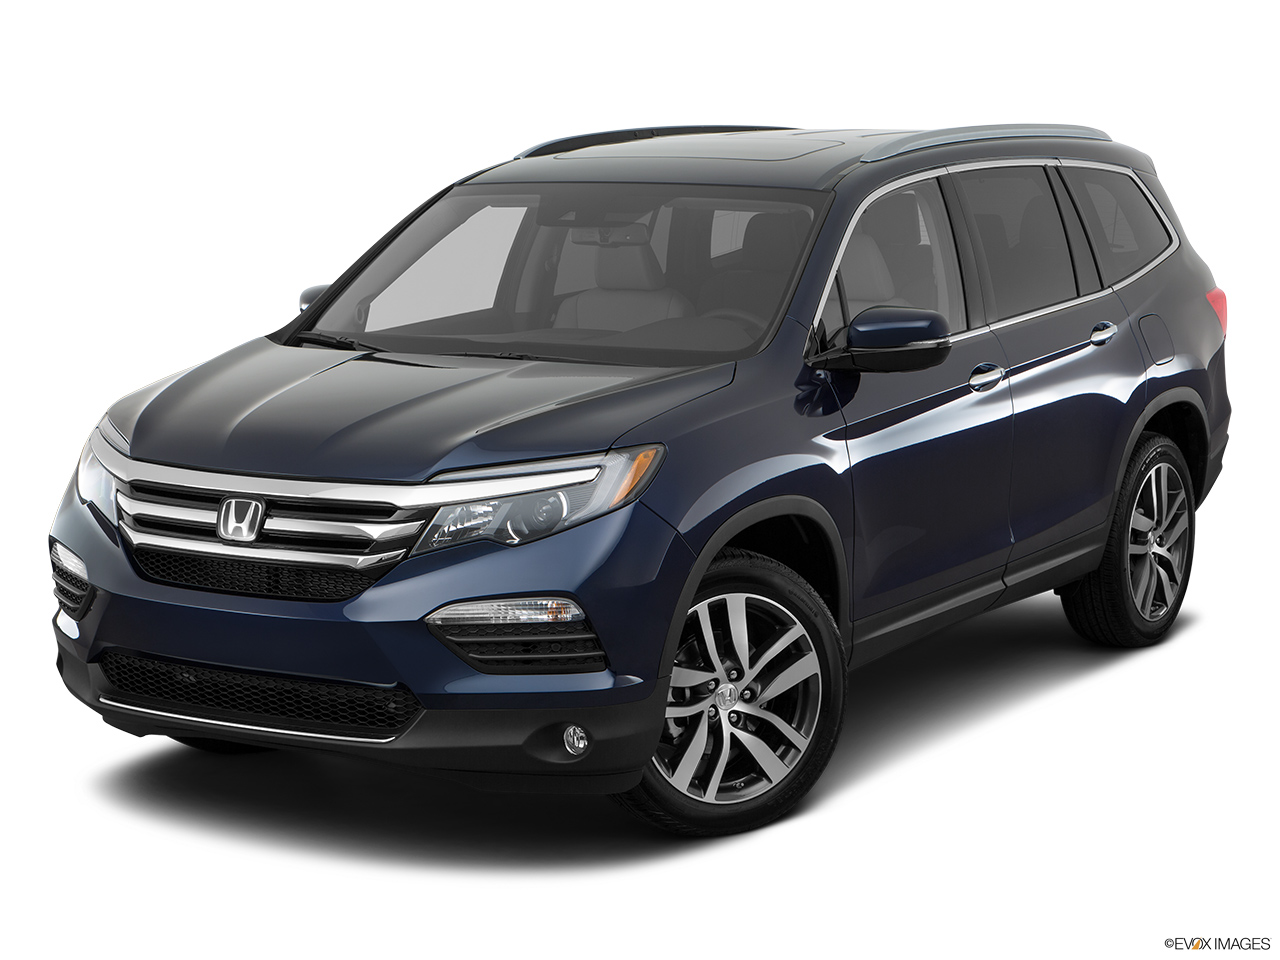 Honda Pilot 2018 3.5 Touring In UAE: New Car Prices, Specs